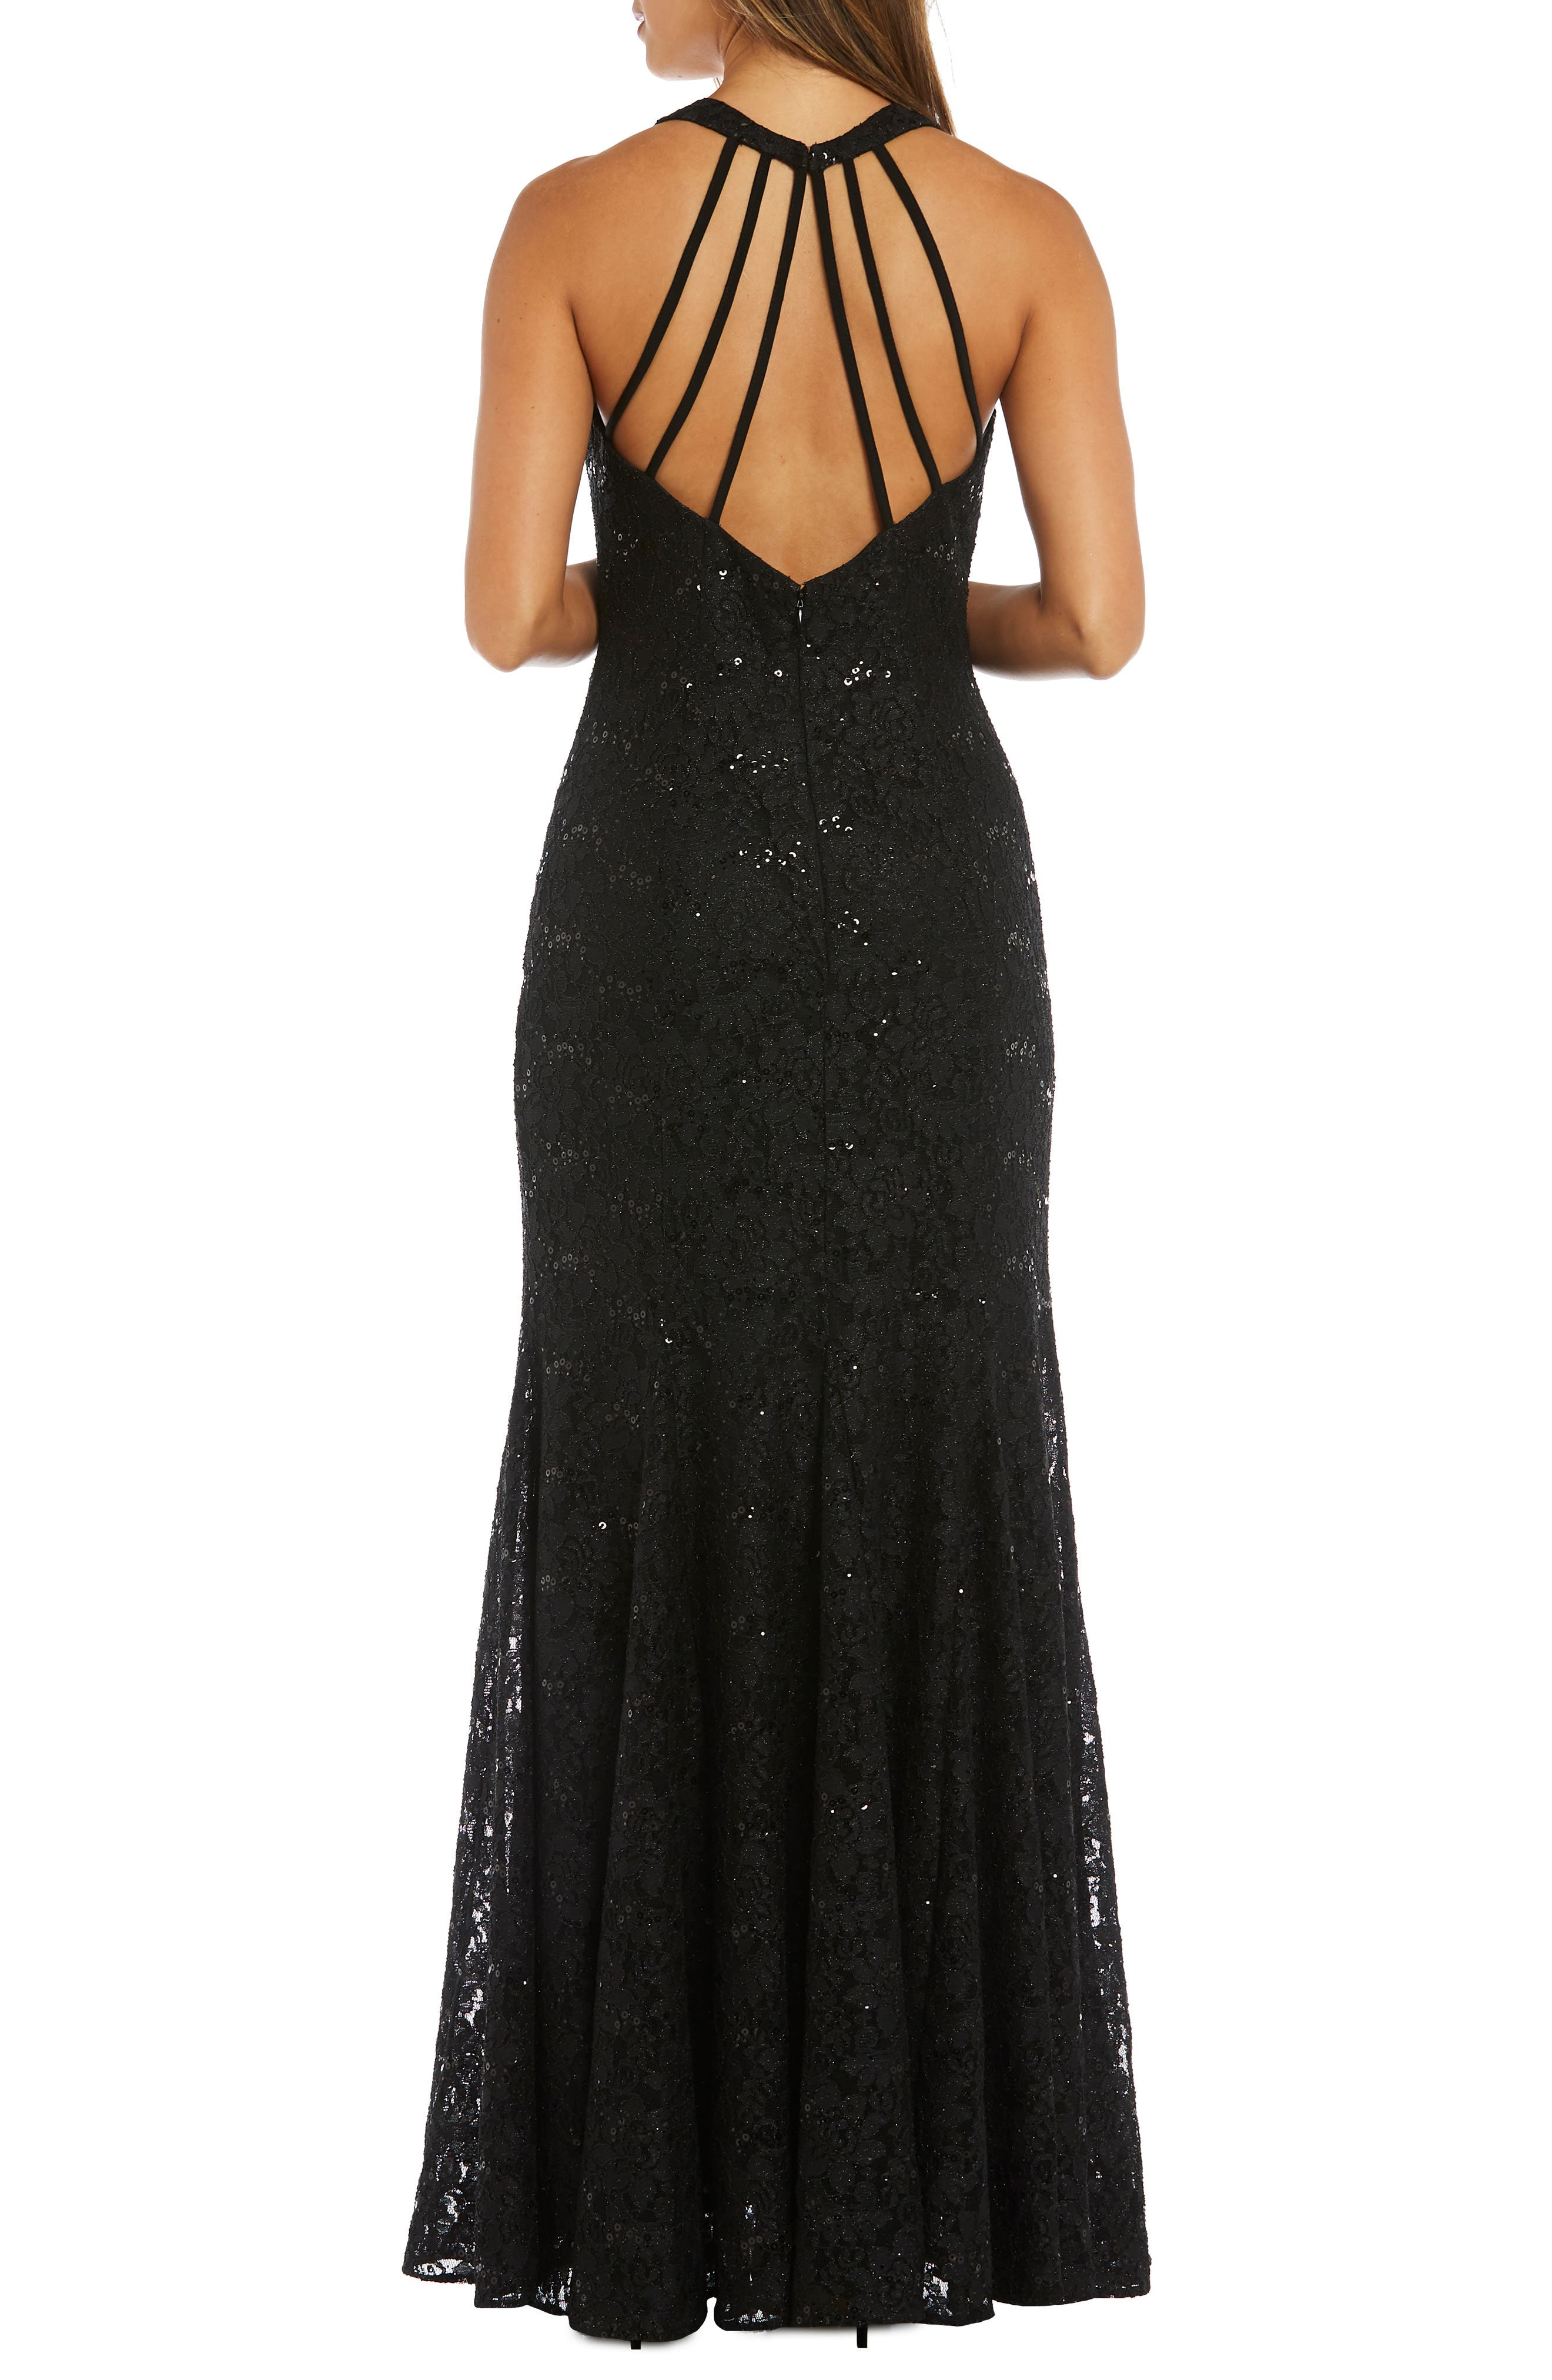 MORGAN & CO.,                             Strappy Back Sequin Lace Gown,                             Alternate thumbnail 2, color,                             BLACK